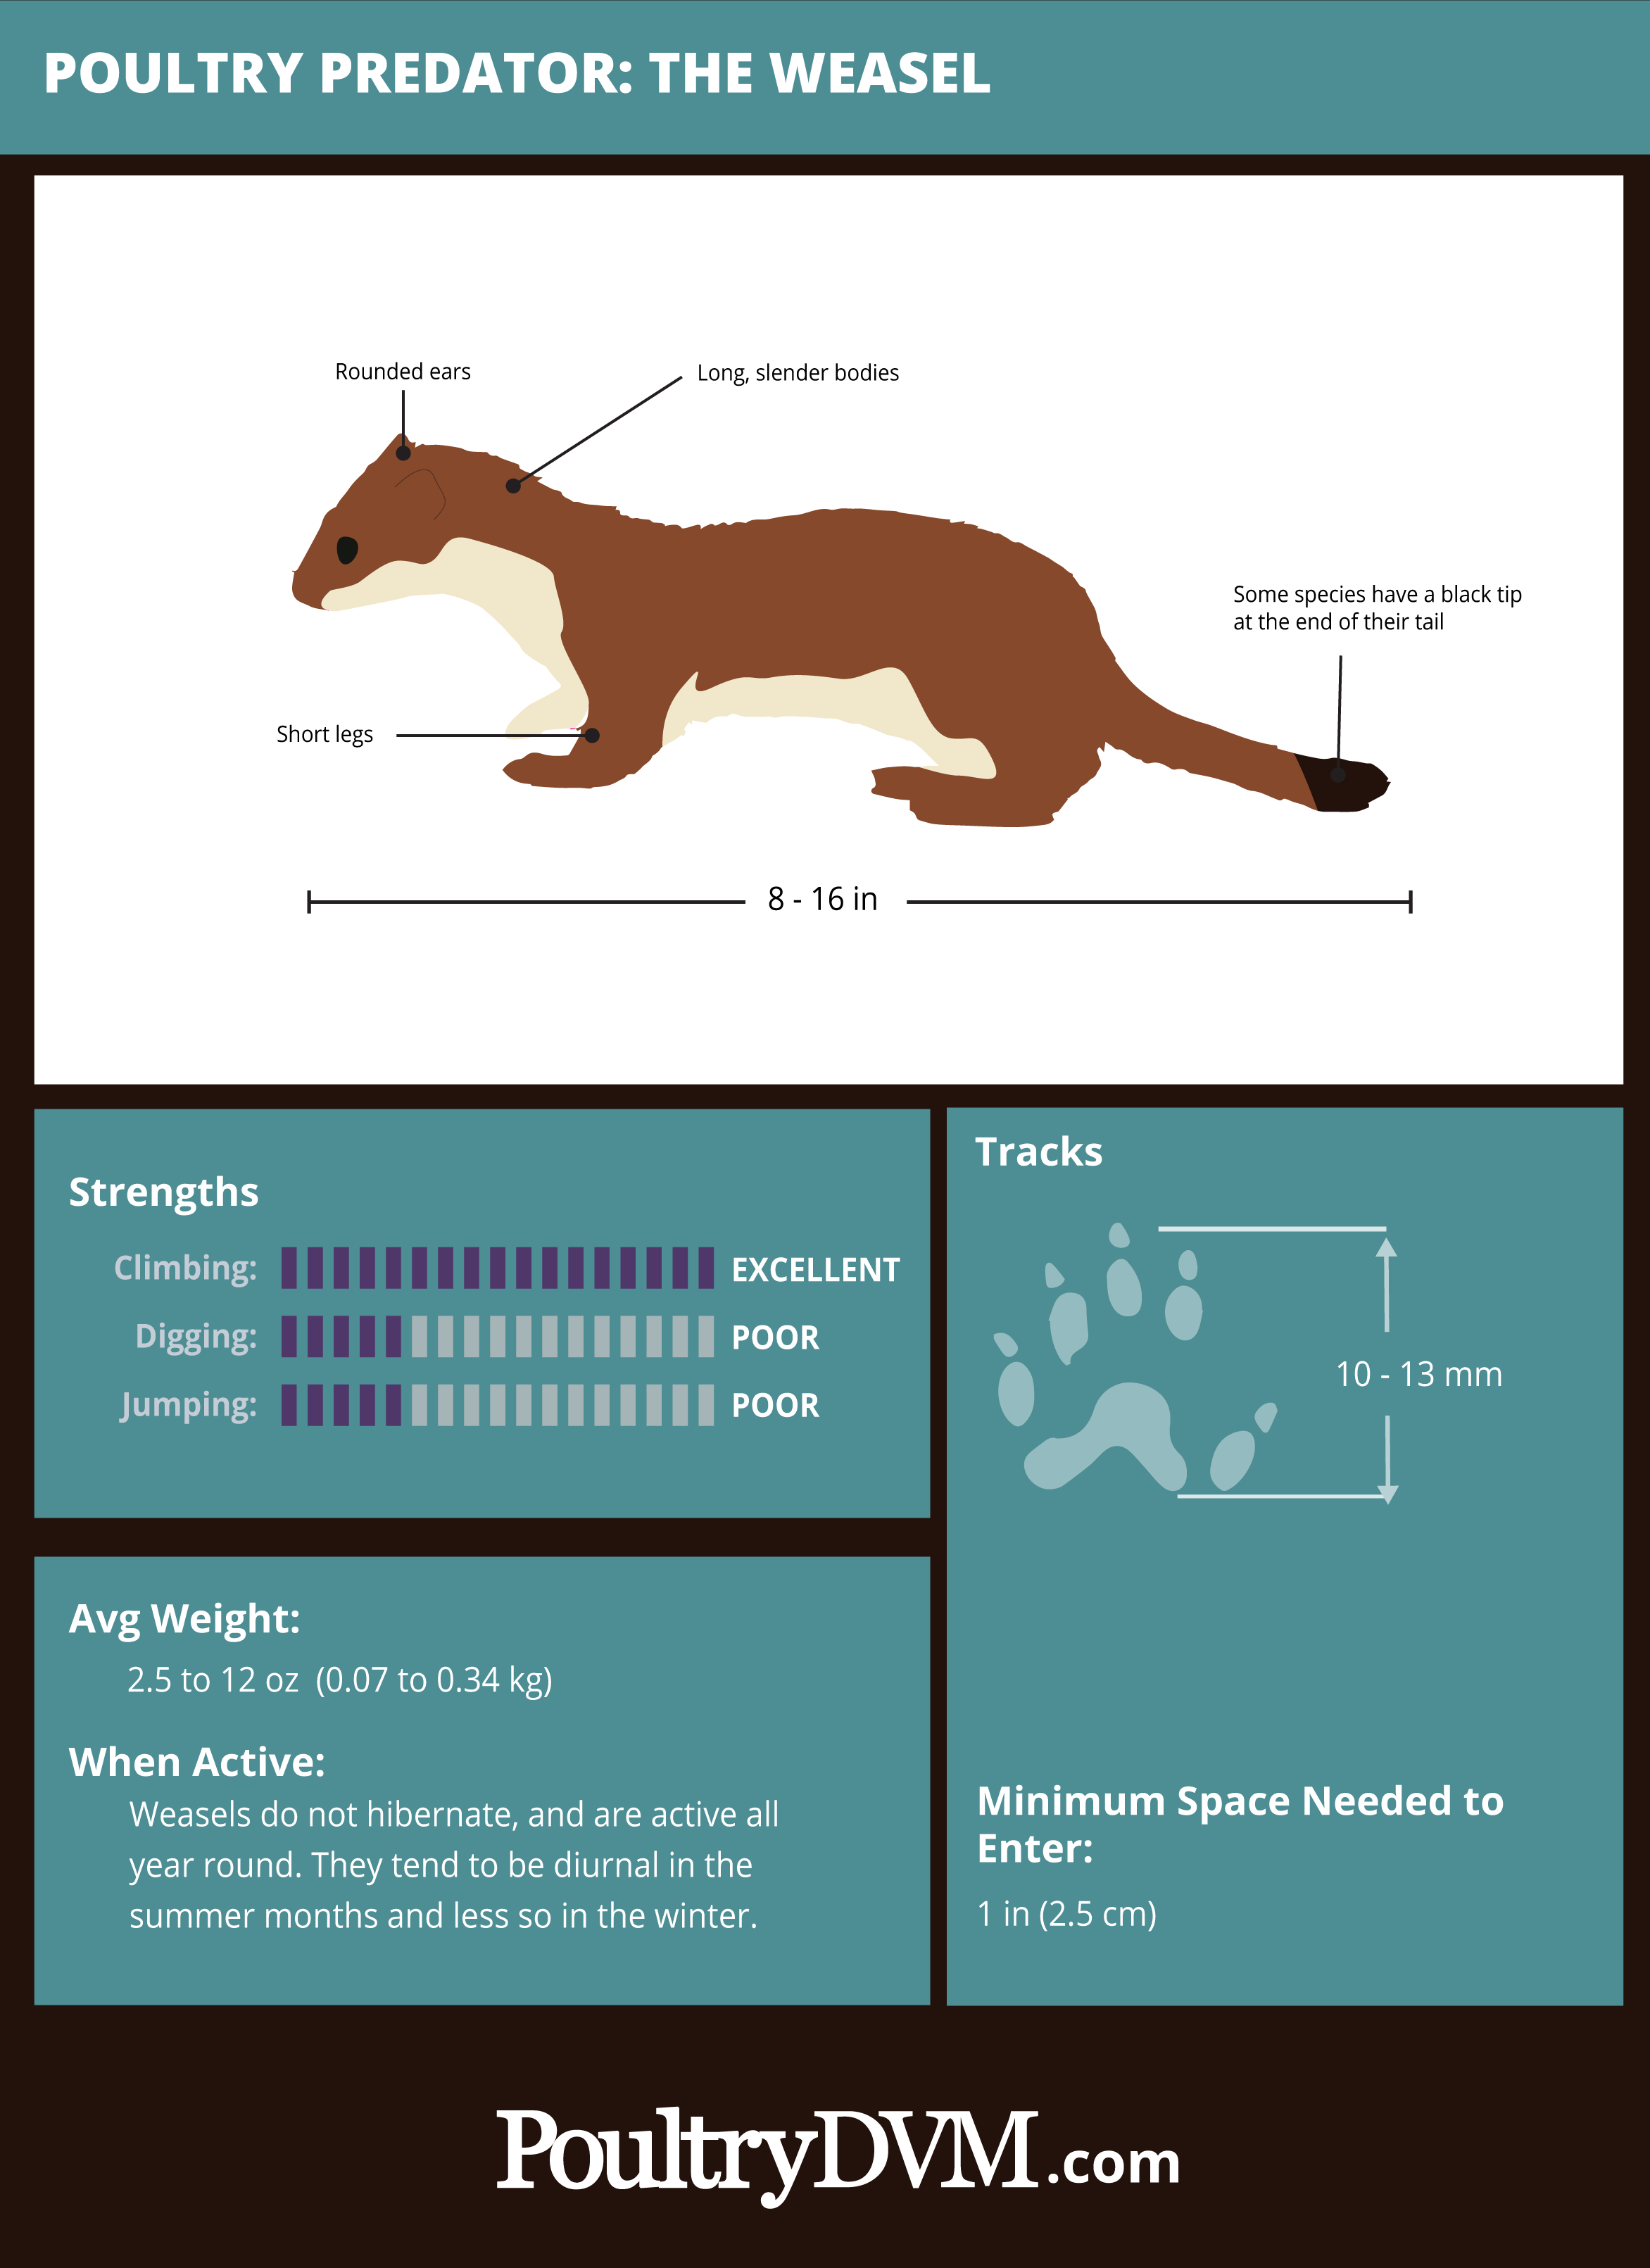 PoultryDVM Predator Profile - The Weasel